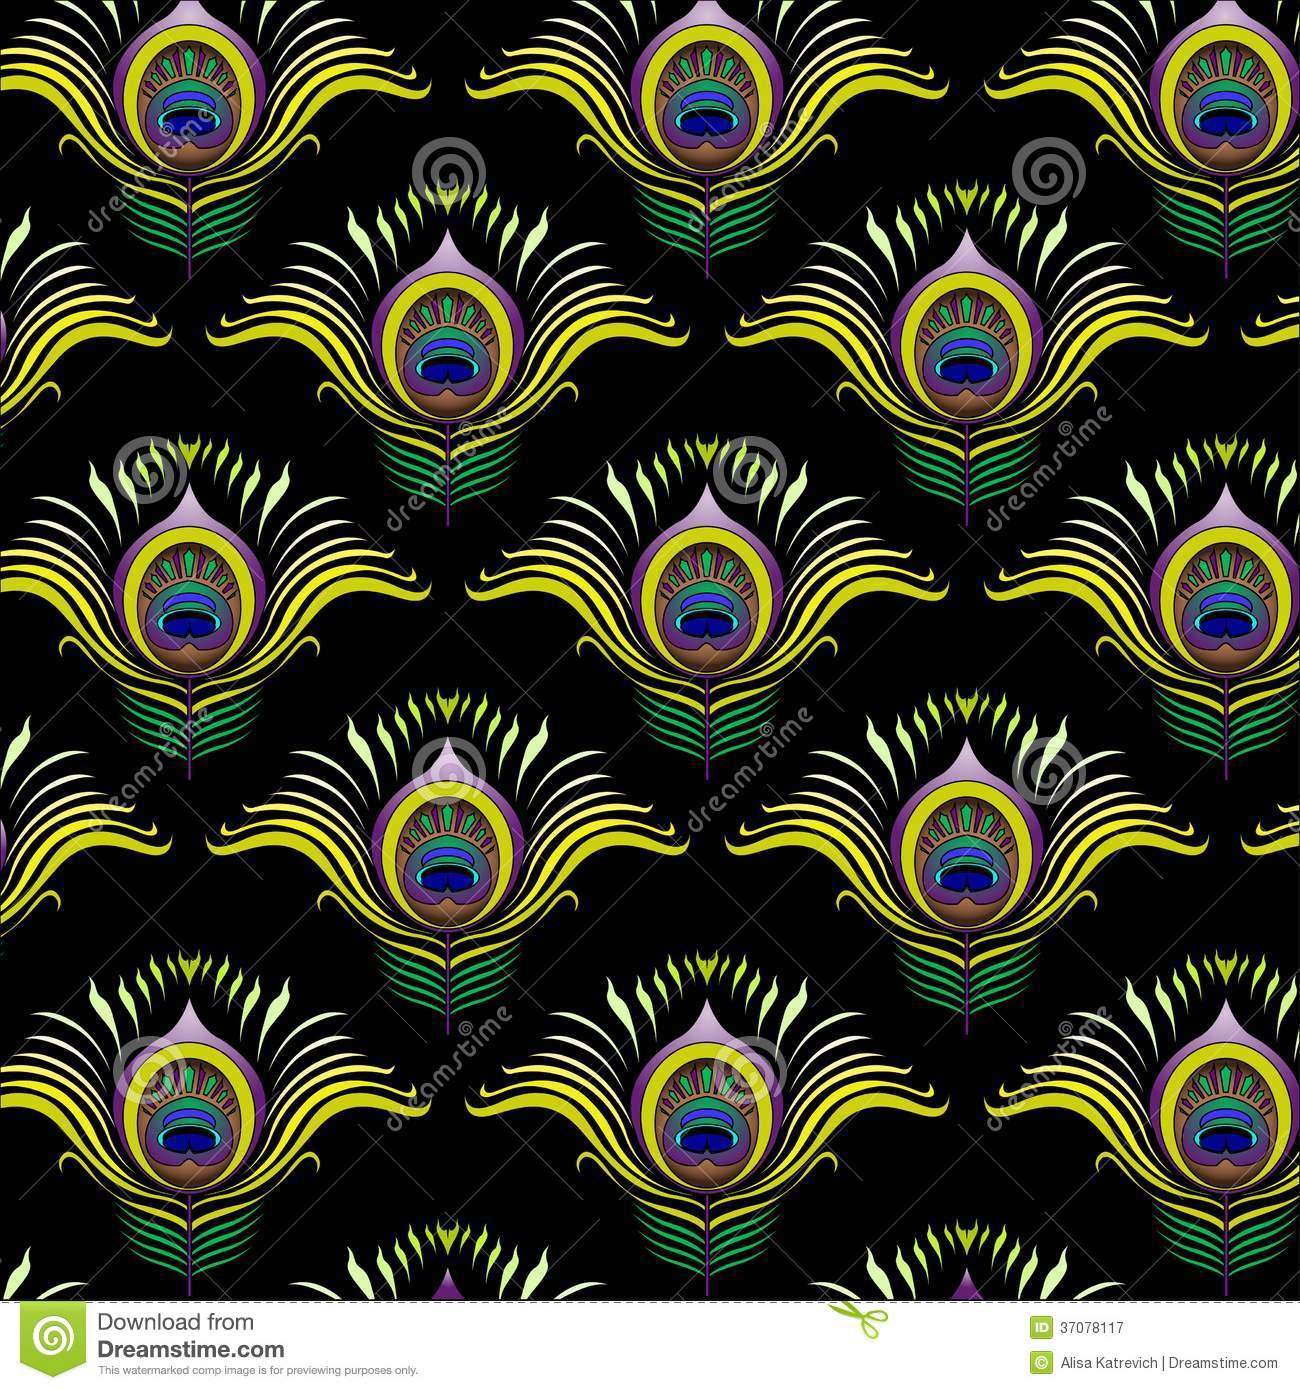 Peacock Feathers Vector Seamless Pattern Stock Vector